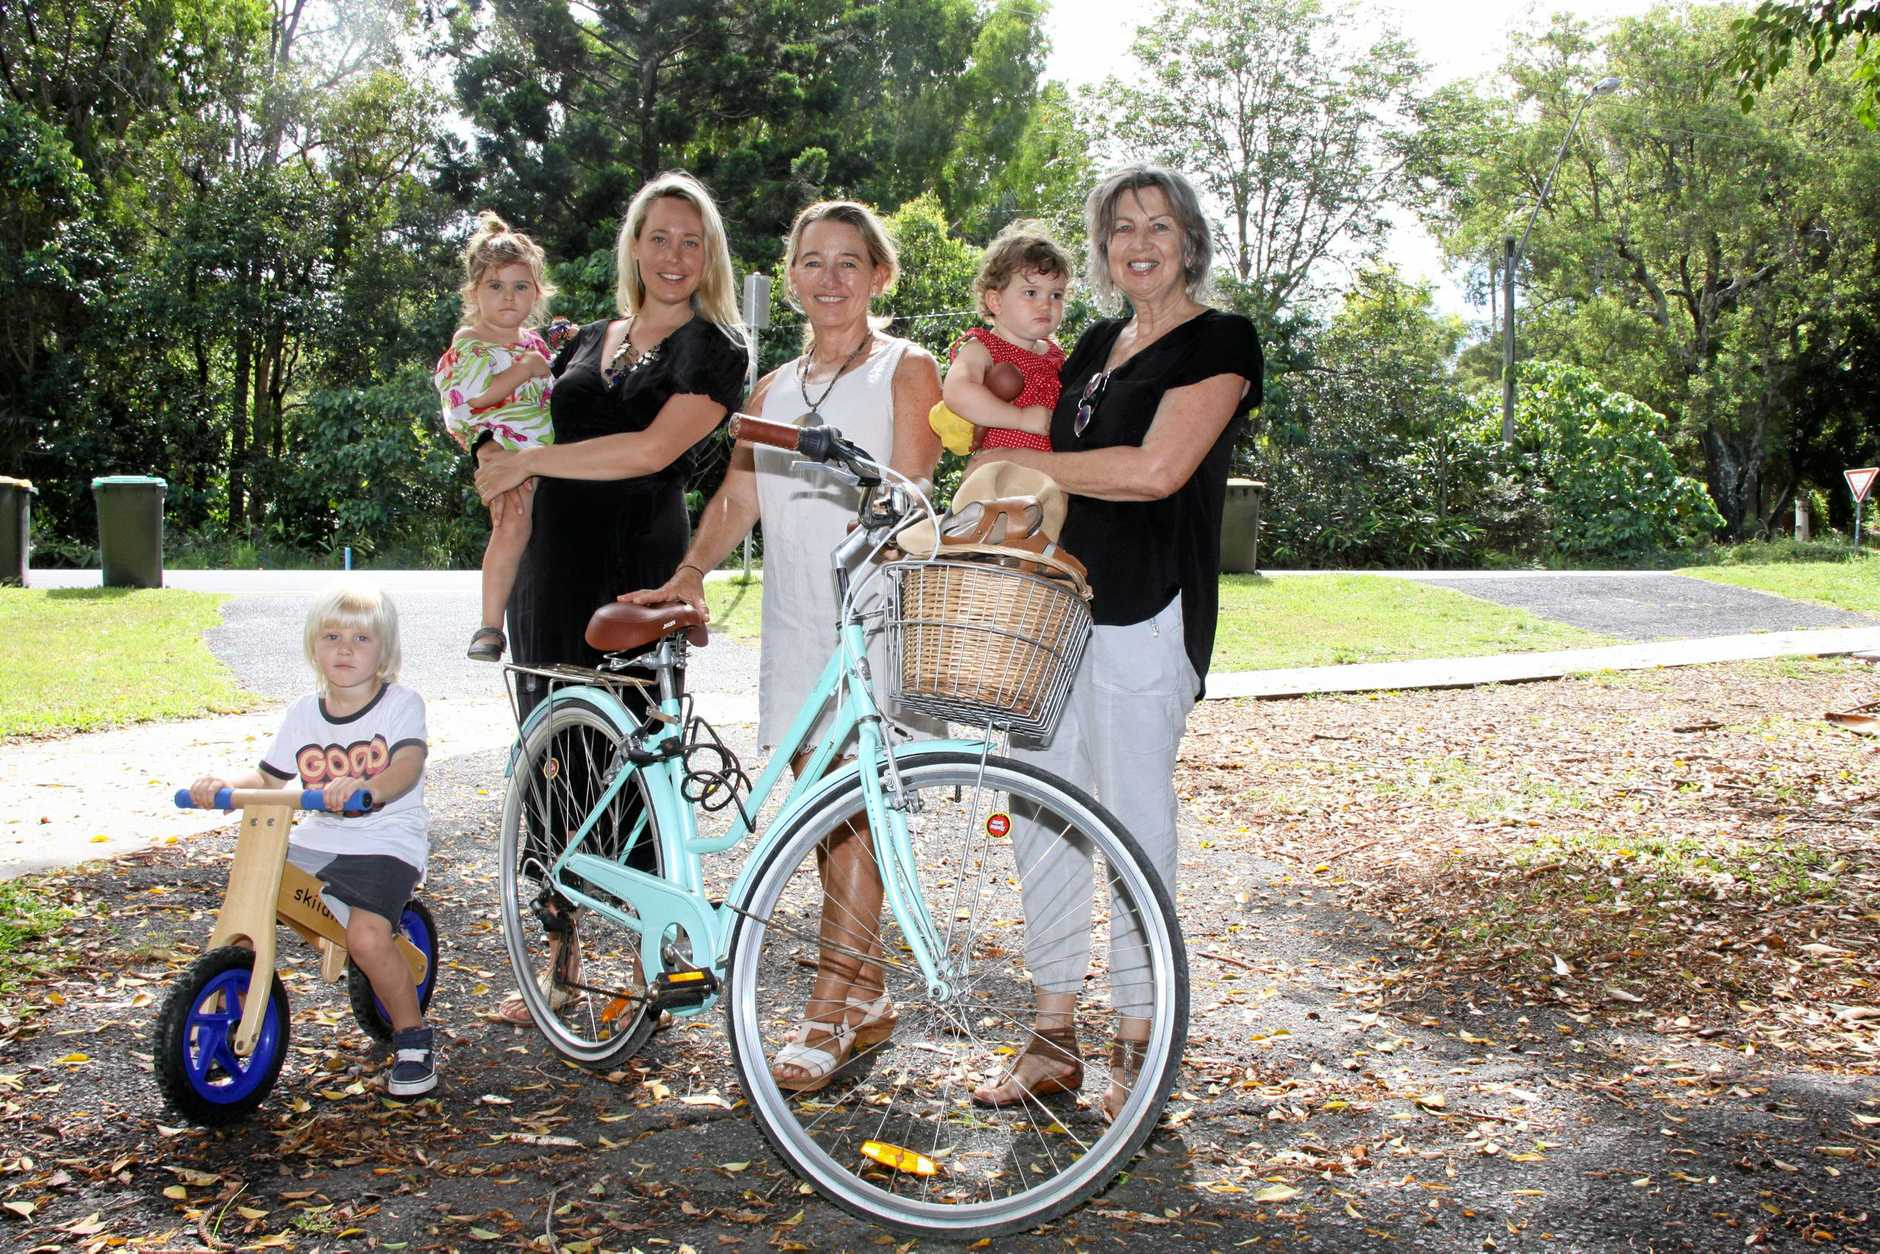 CYCLE OF LIFE: A new cyclepath from Byron Bay to Suffolk Park will be named 'The Ben Donohoe Memorial Cycleway', after family and freinds made the request. L-R Jarvis Donohoe 6, Angie Donohoe holding Nova Donohoe, 2, friend Melissa Armstong, Huxley Yeadon, 1, held by Ben's mother Yvonne Donohoe, at Byron Bay.